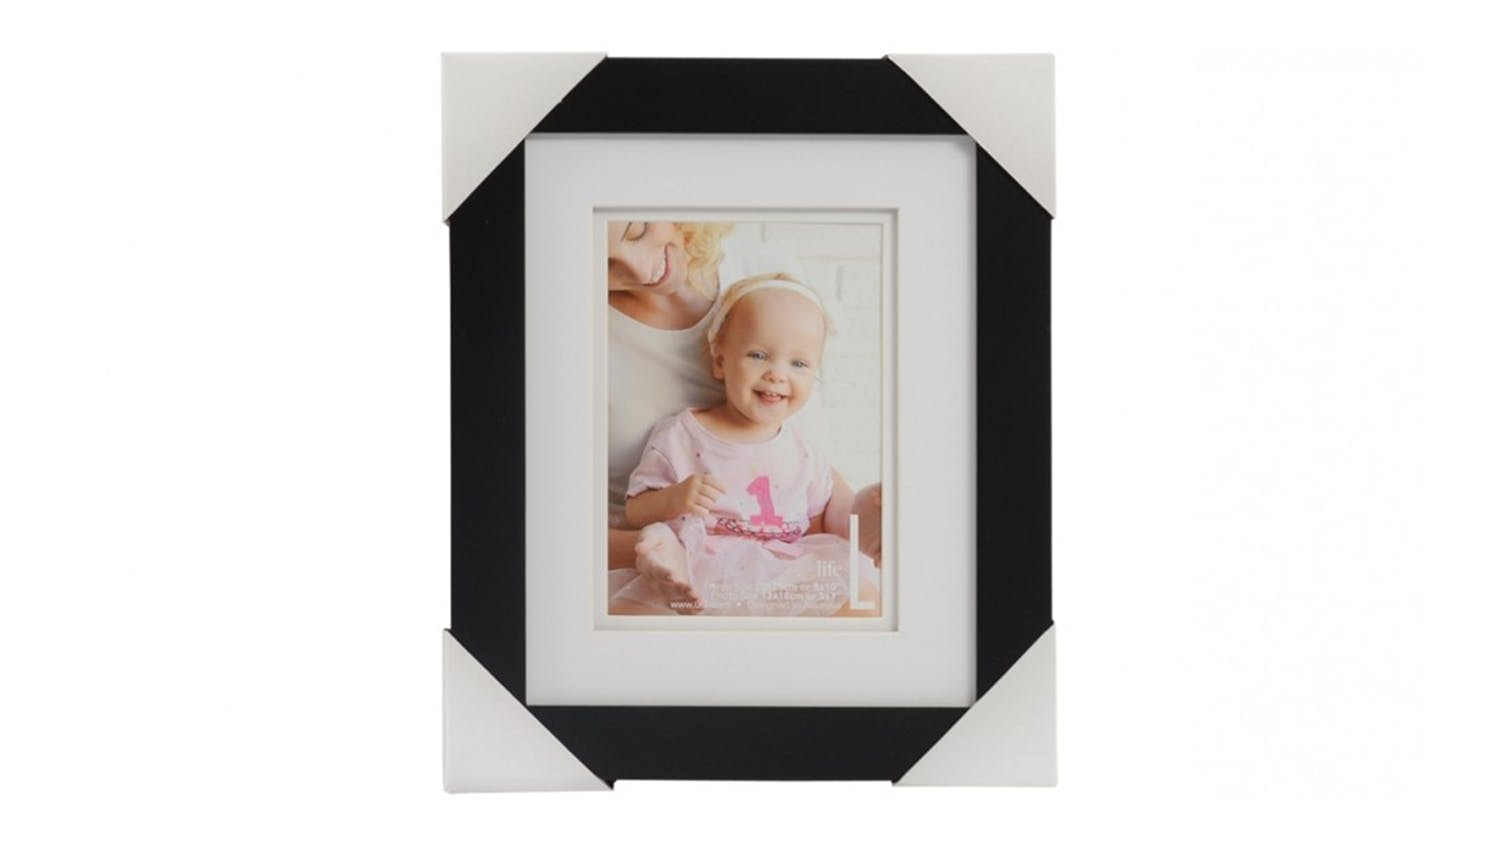 UR1 Life 8x10 Black Photo Frame